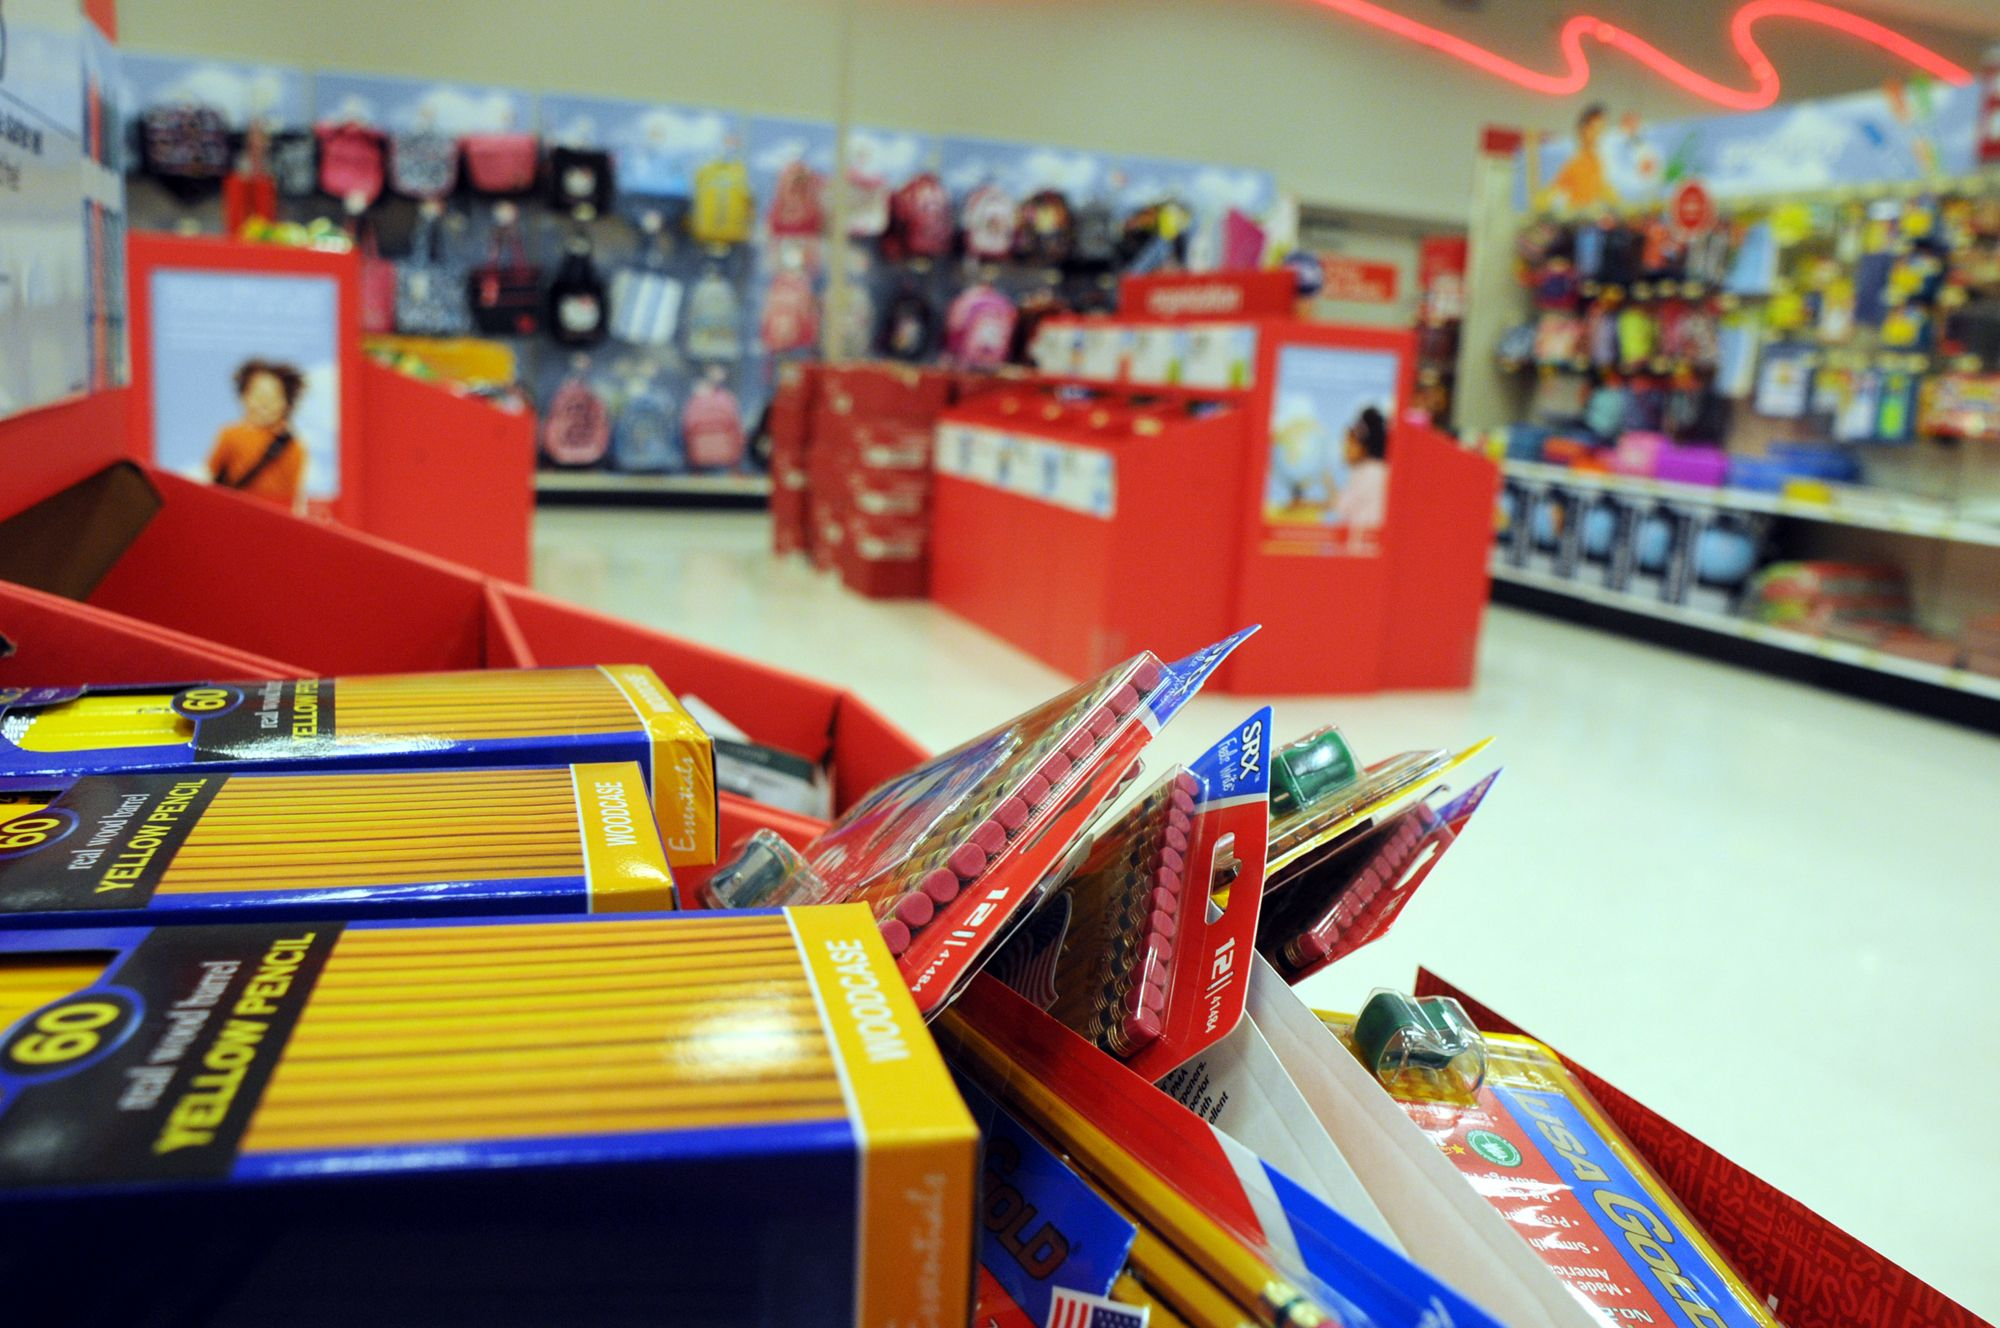 Teachers Can Save 15 Percent On School Supplies At Target This Week